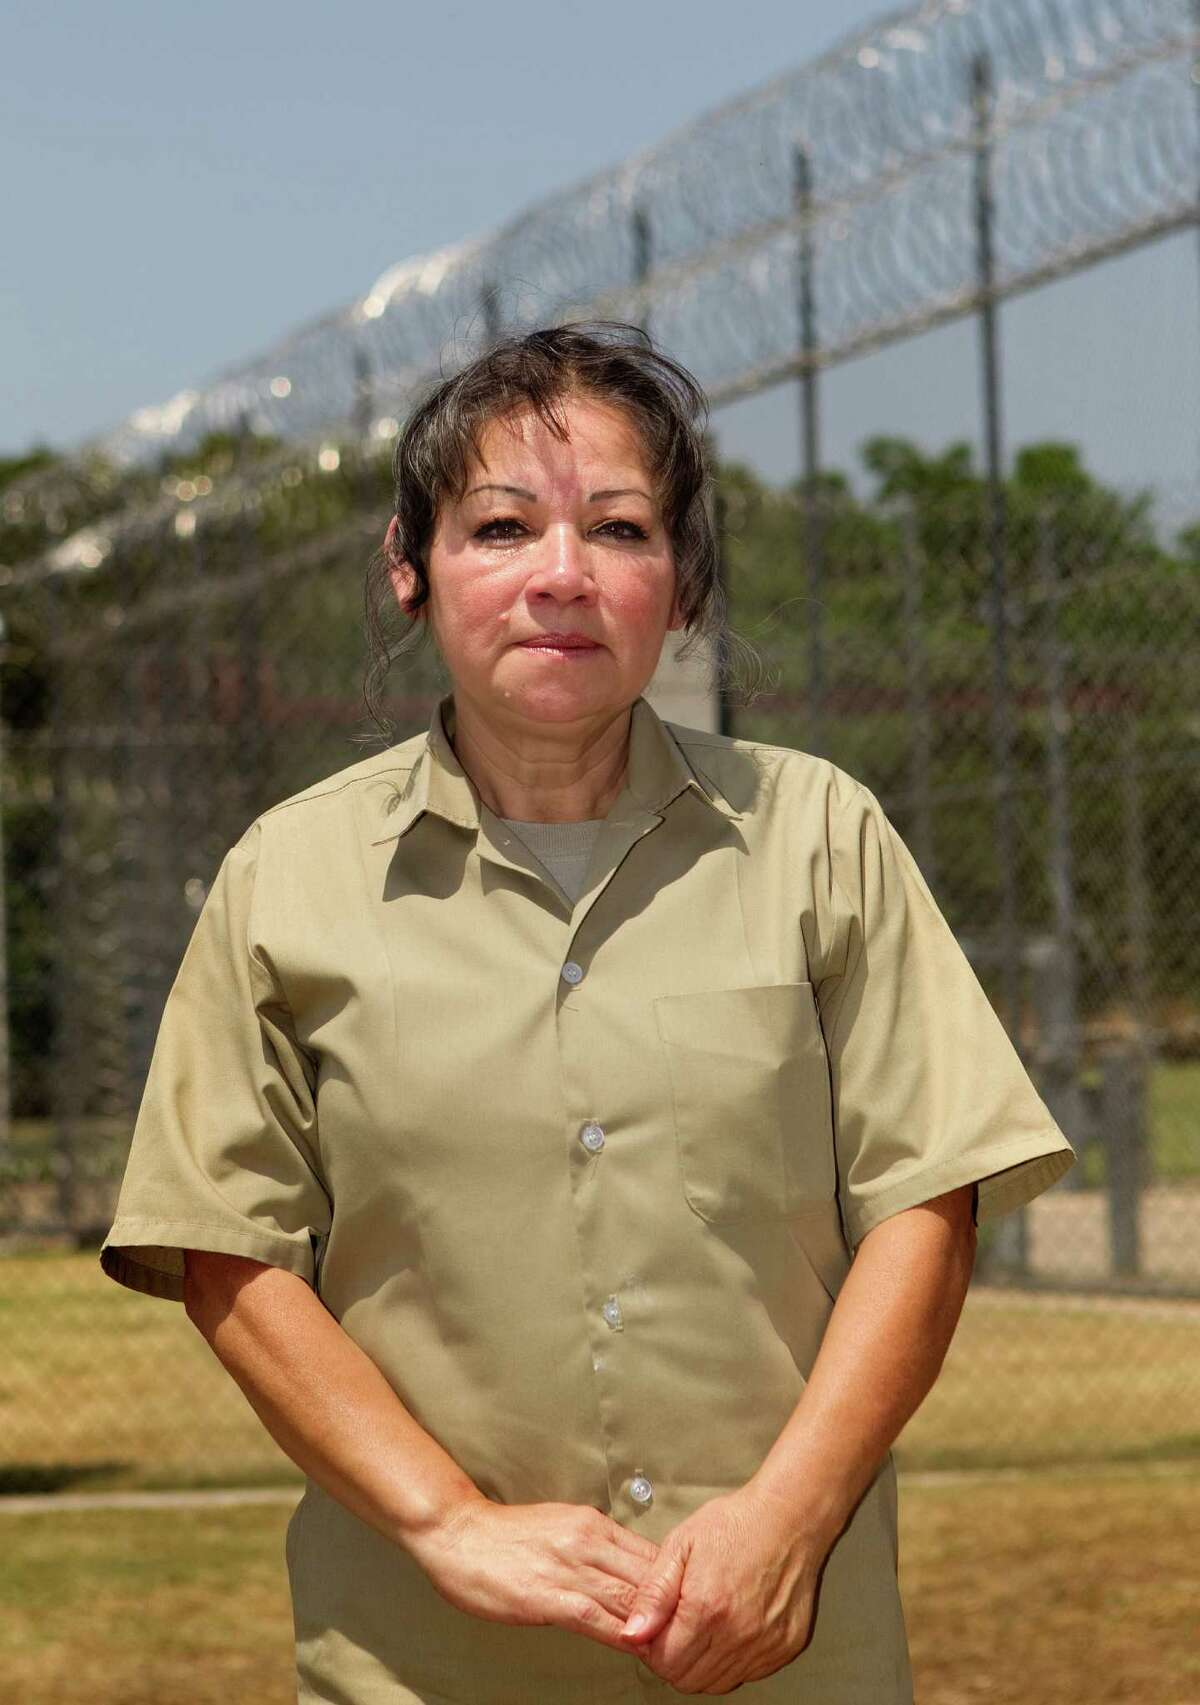 Castillo said she was tricked into unknowingly helping transport drugs and money for a big trafficker in Mexico.